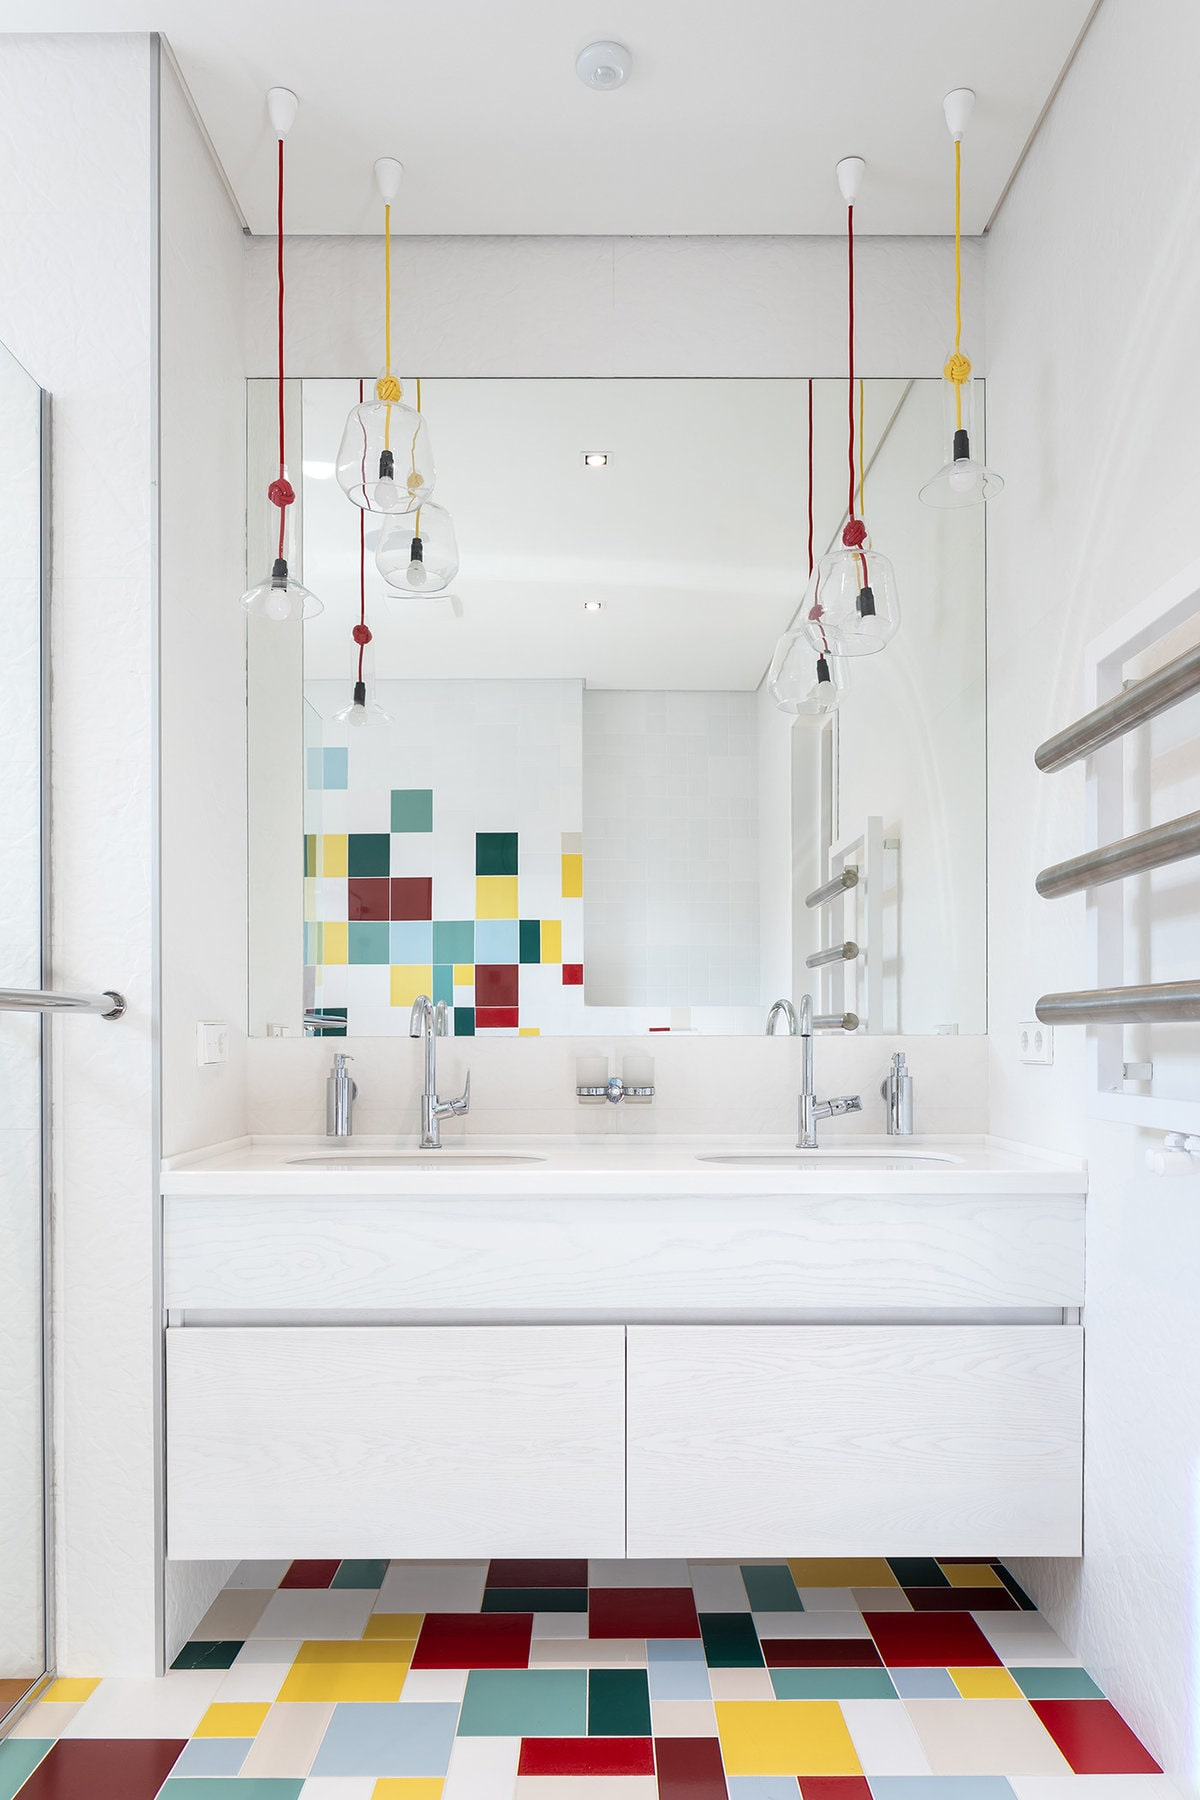 This is a quirky and fun bathroom with white walls, a white ceiling and a modern white vanity. These are complemented by the colorful tiles of the floor and the pendant light by the wall-mounted mirror.